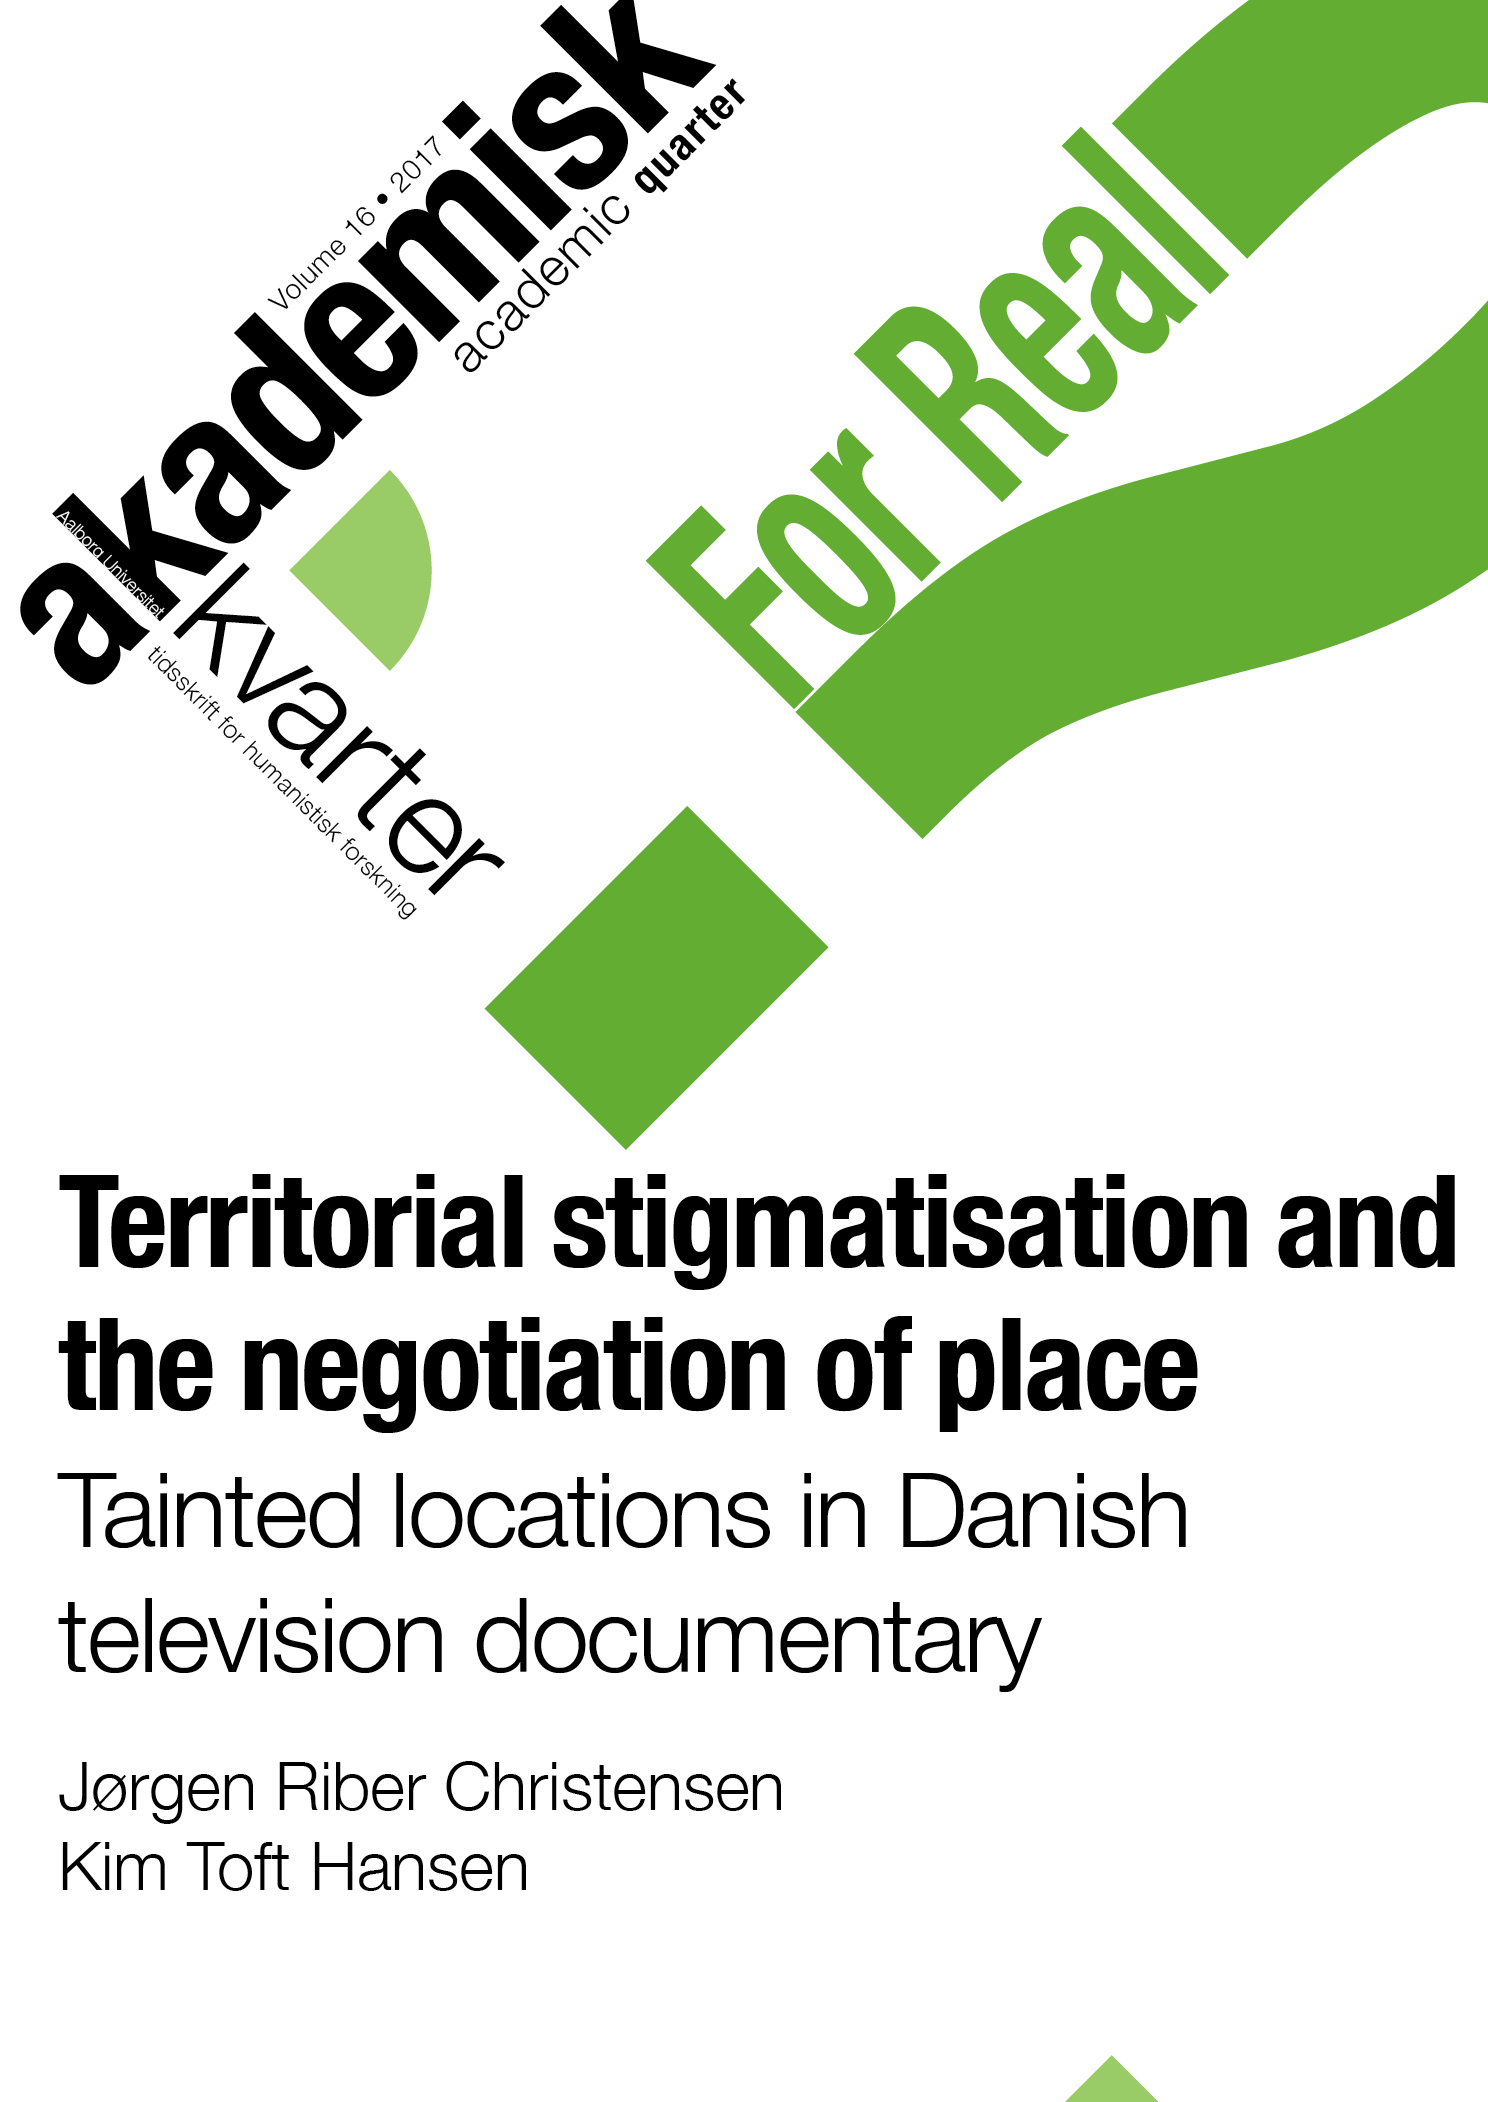 Territorial stigmatisation and the negotiation of place